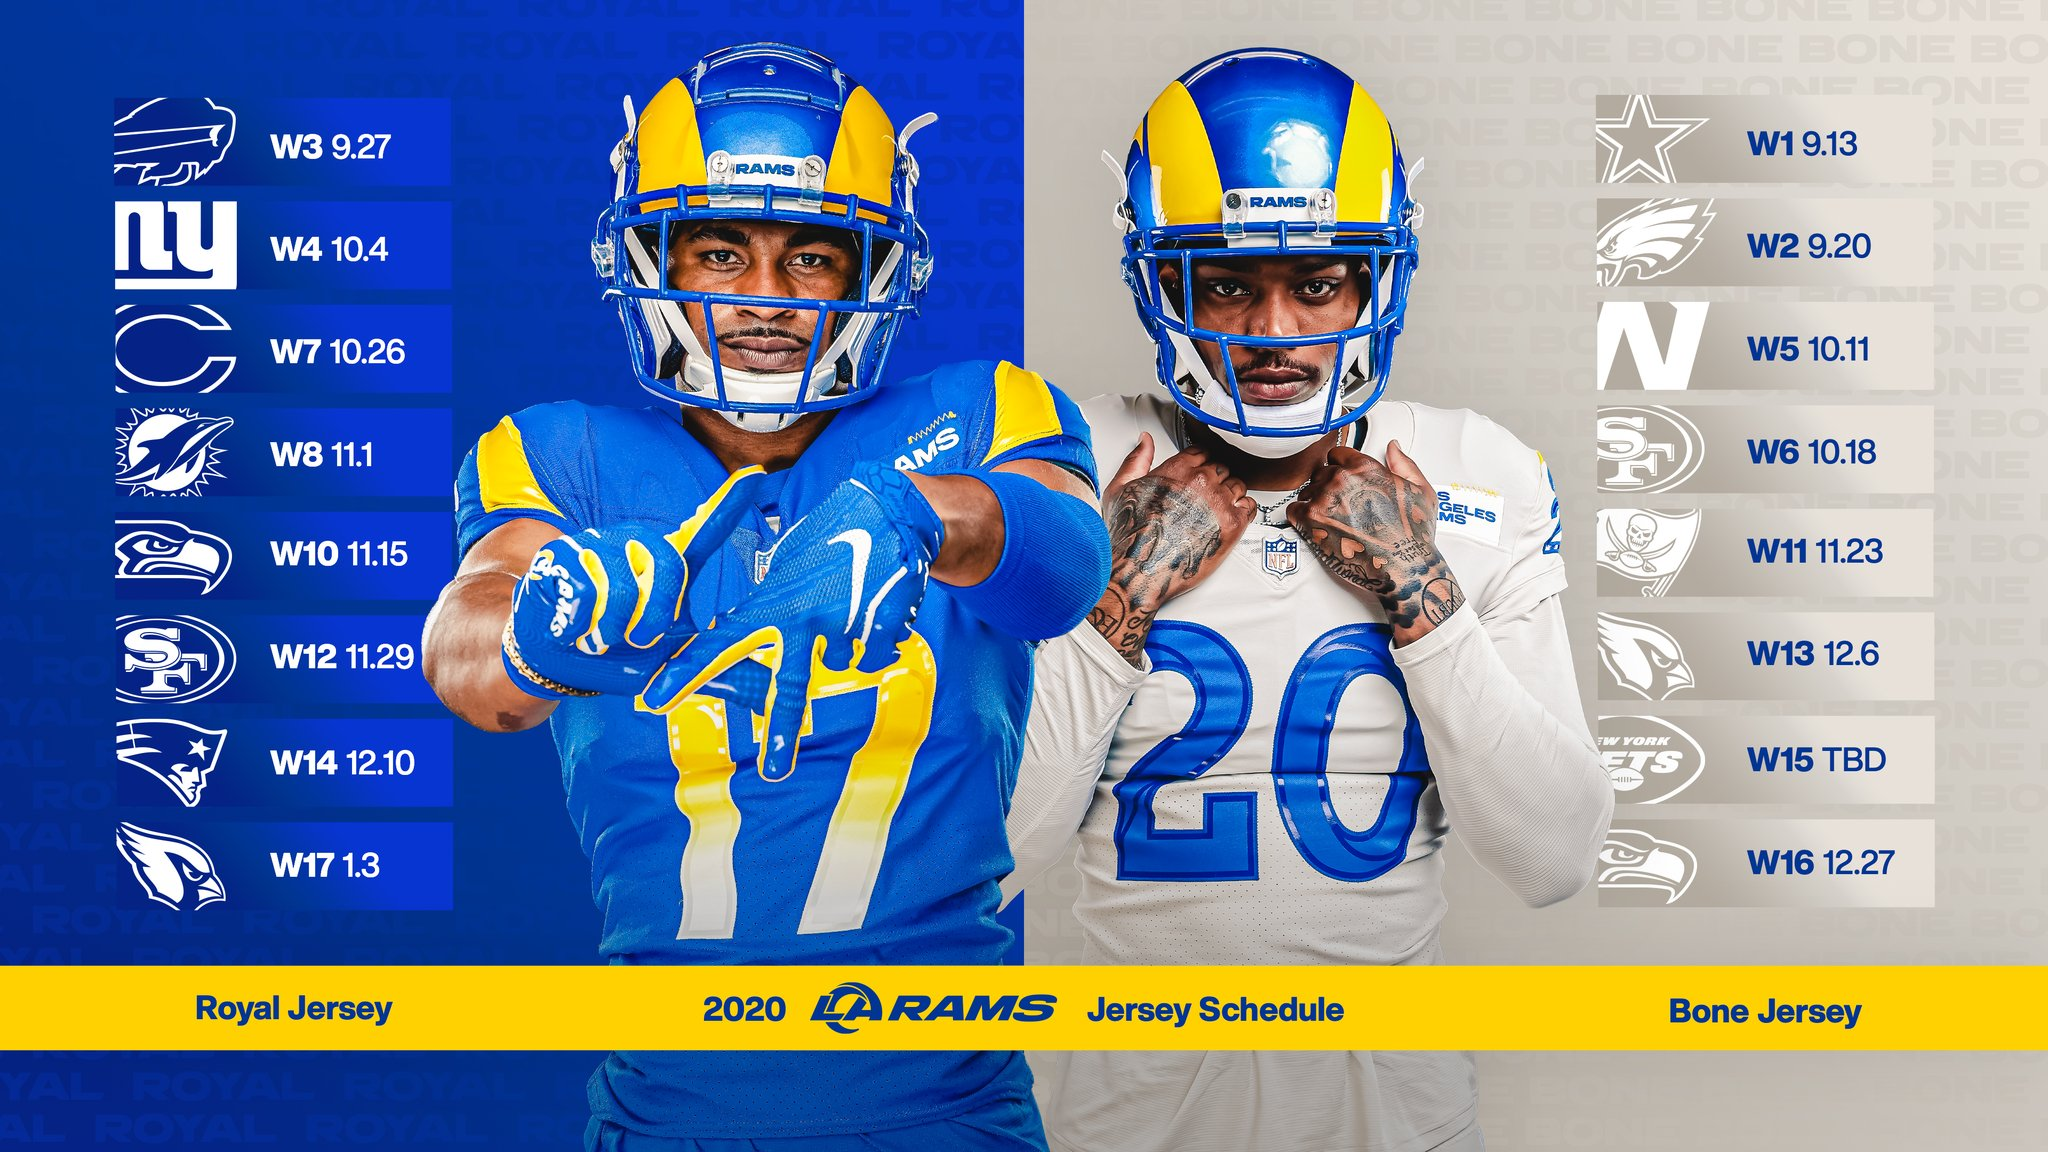 Los Angeles Rams On Twitter New Year New Home New Look Your 2020 Uniform Schedule